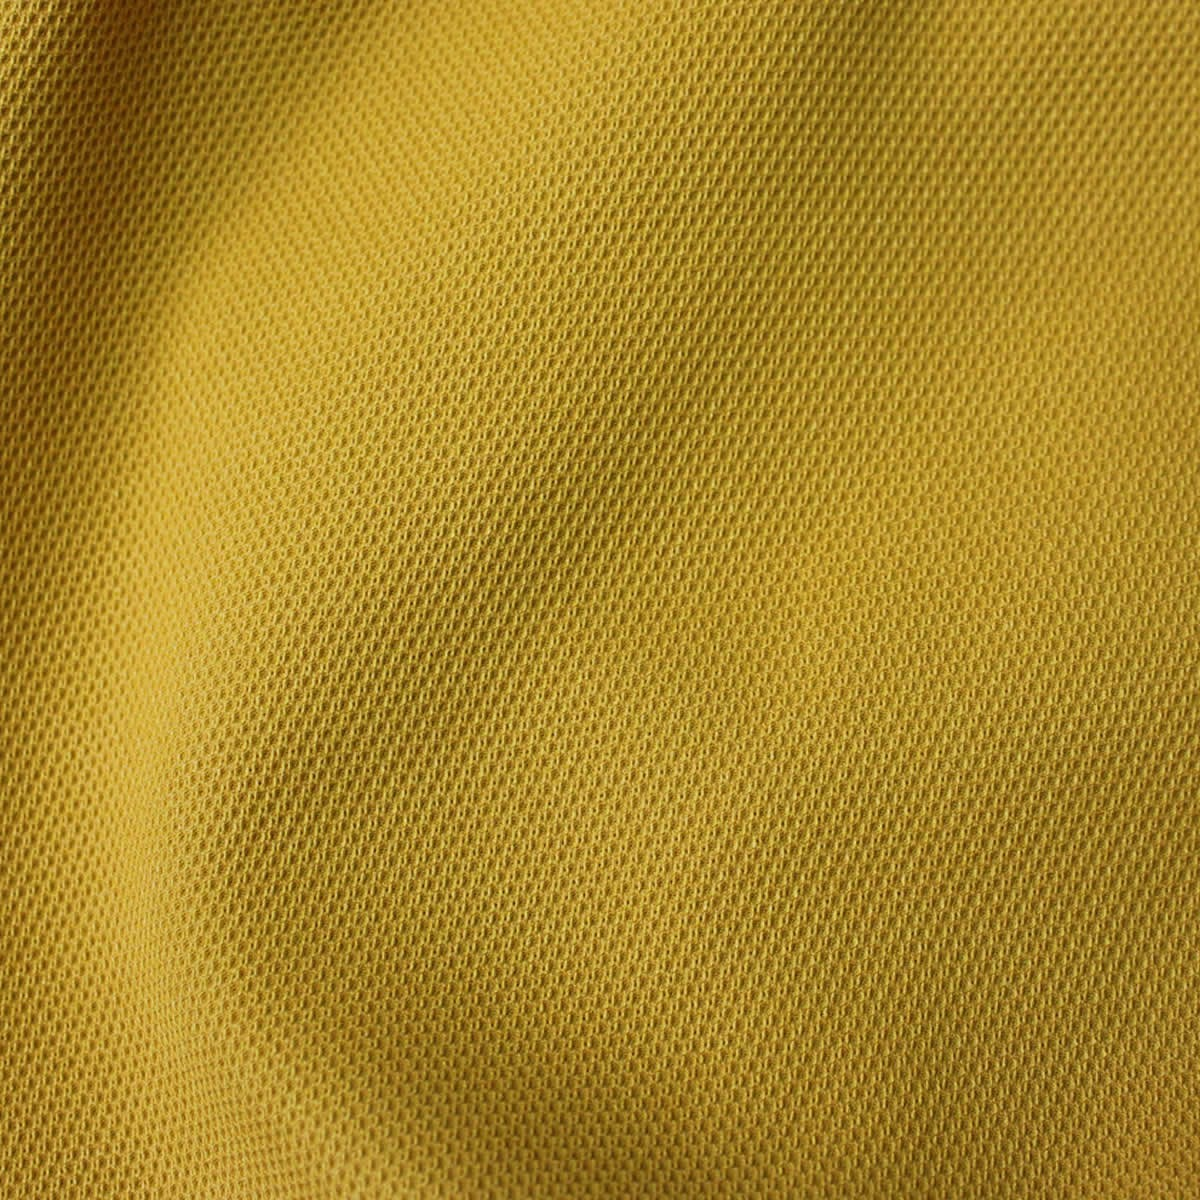 Acoustic Fabric for Loudspeakers Grill 150x90cm Yellow